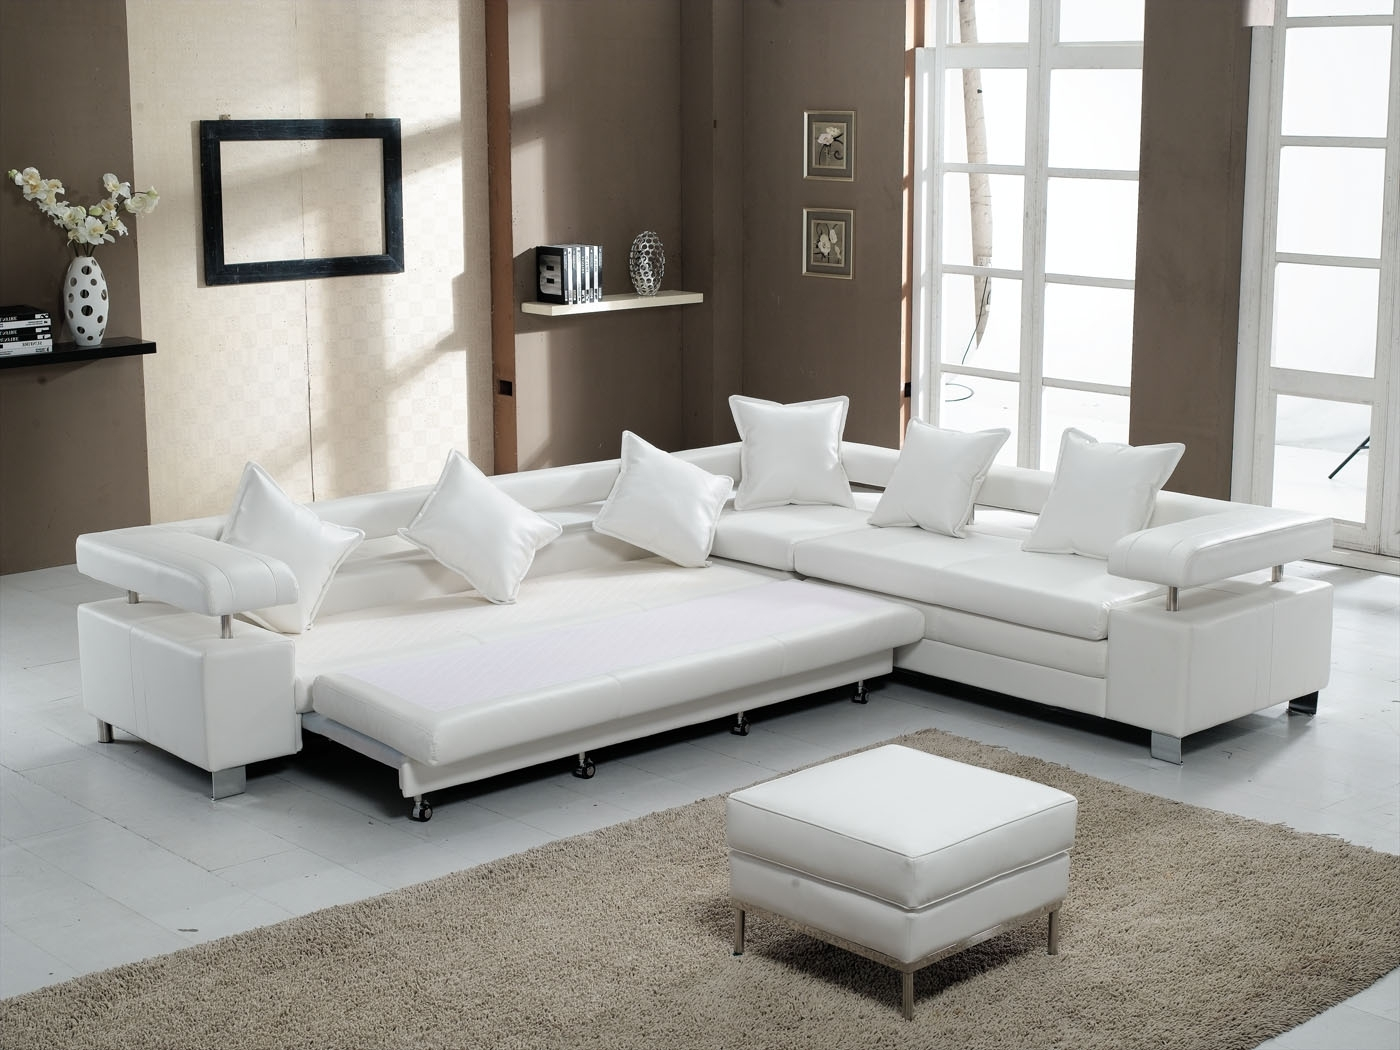 Sectional Sleeper Sofas With Ottoman Throughout Most Up To Date 3 Piece White Leather Sectional Sofa With Stainless Steel Legs And (View 5 of 15)